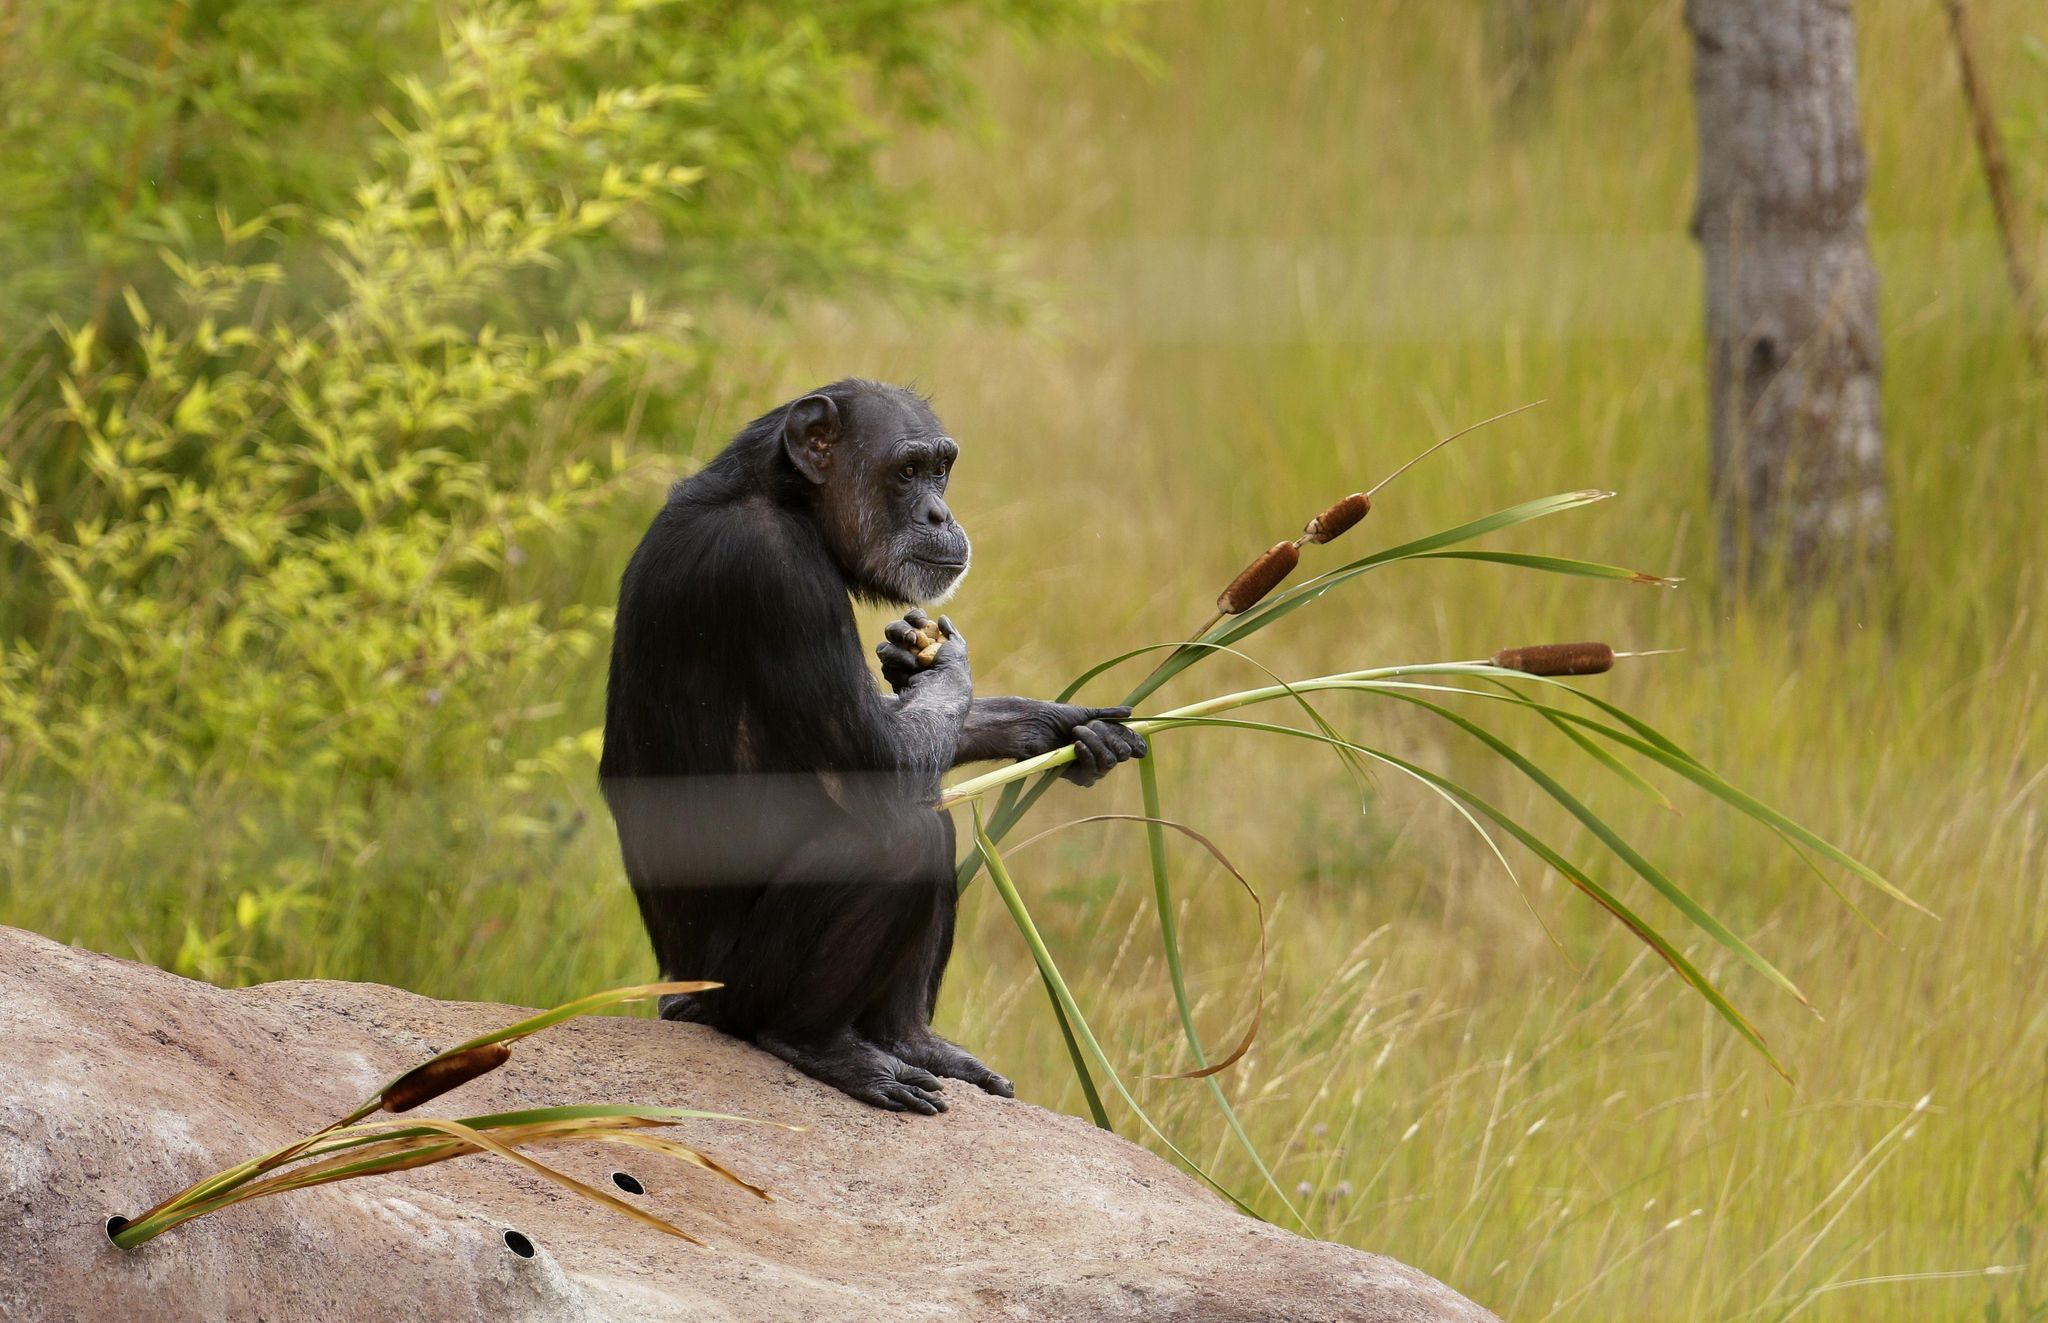 Chimpanzees use branches to make ladder, escape from zoo